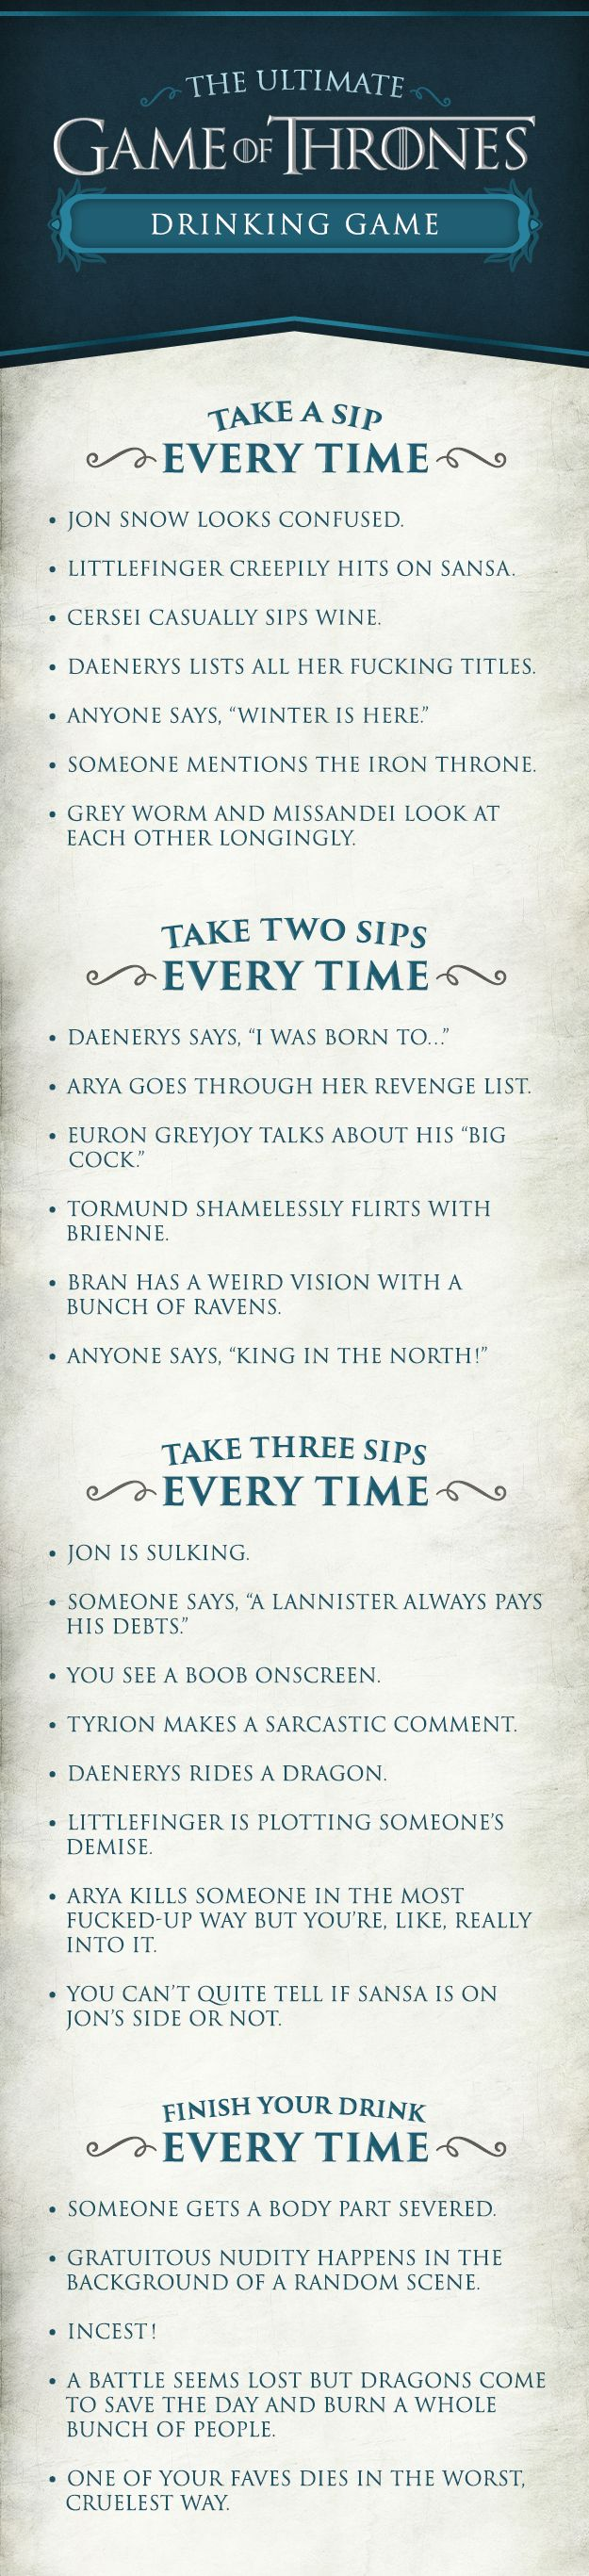 "Here's How To Play The Ultimate ""Game Of Thrones"" Drinking Game"